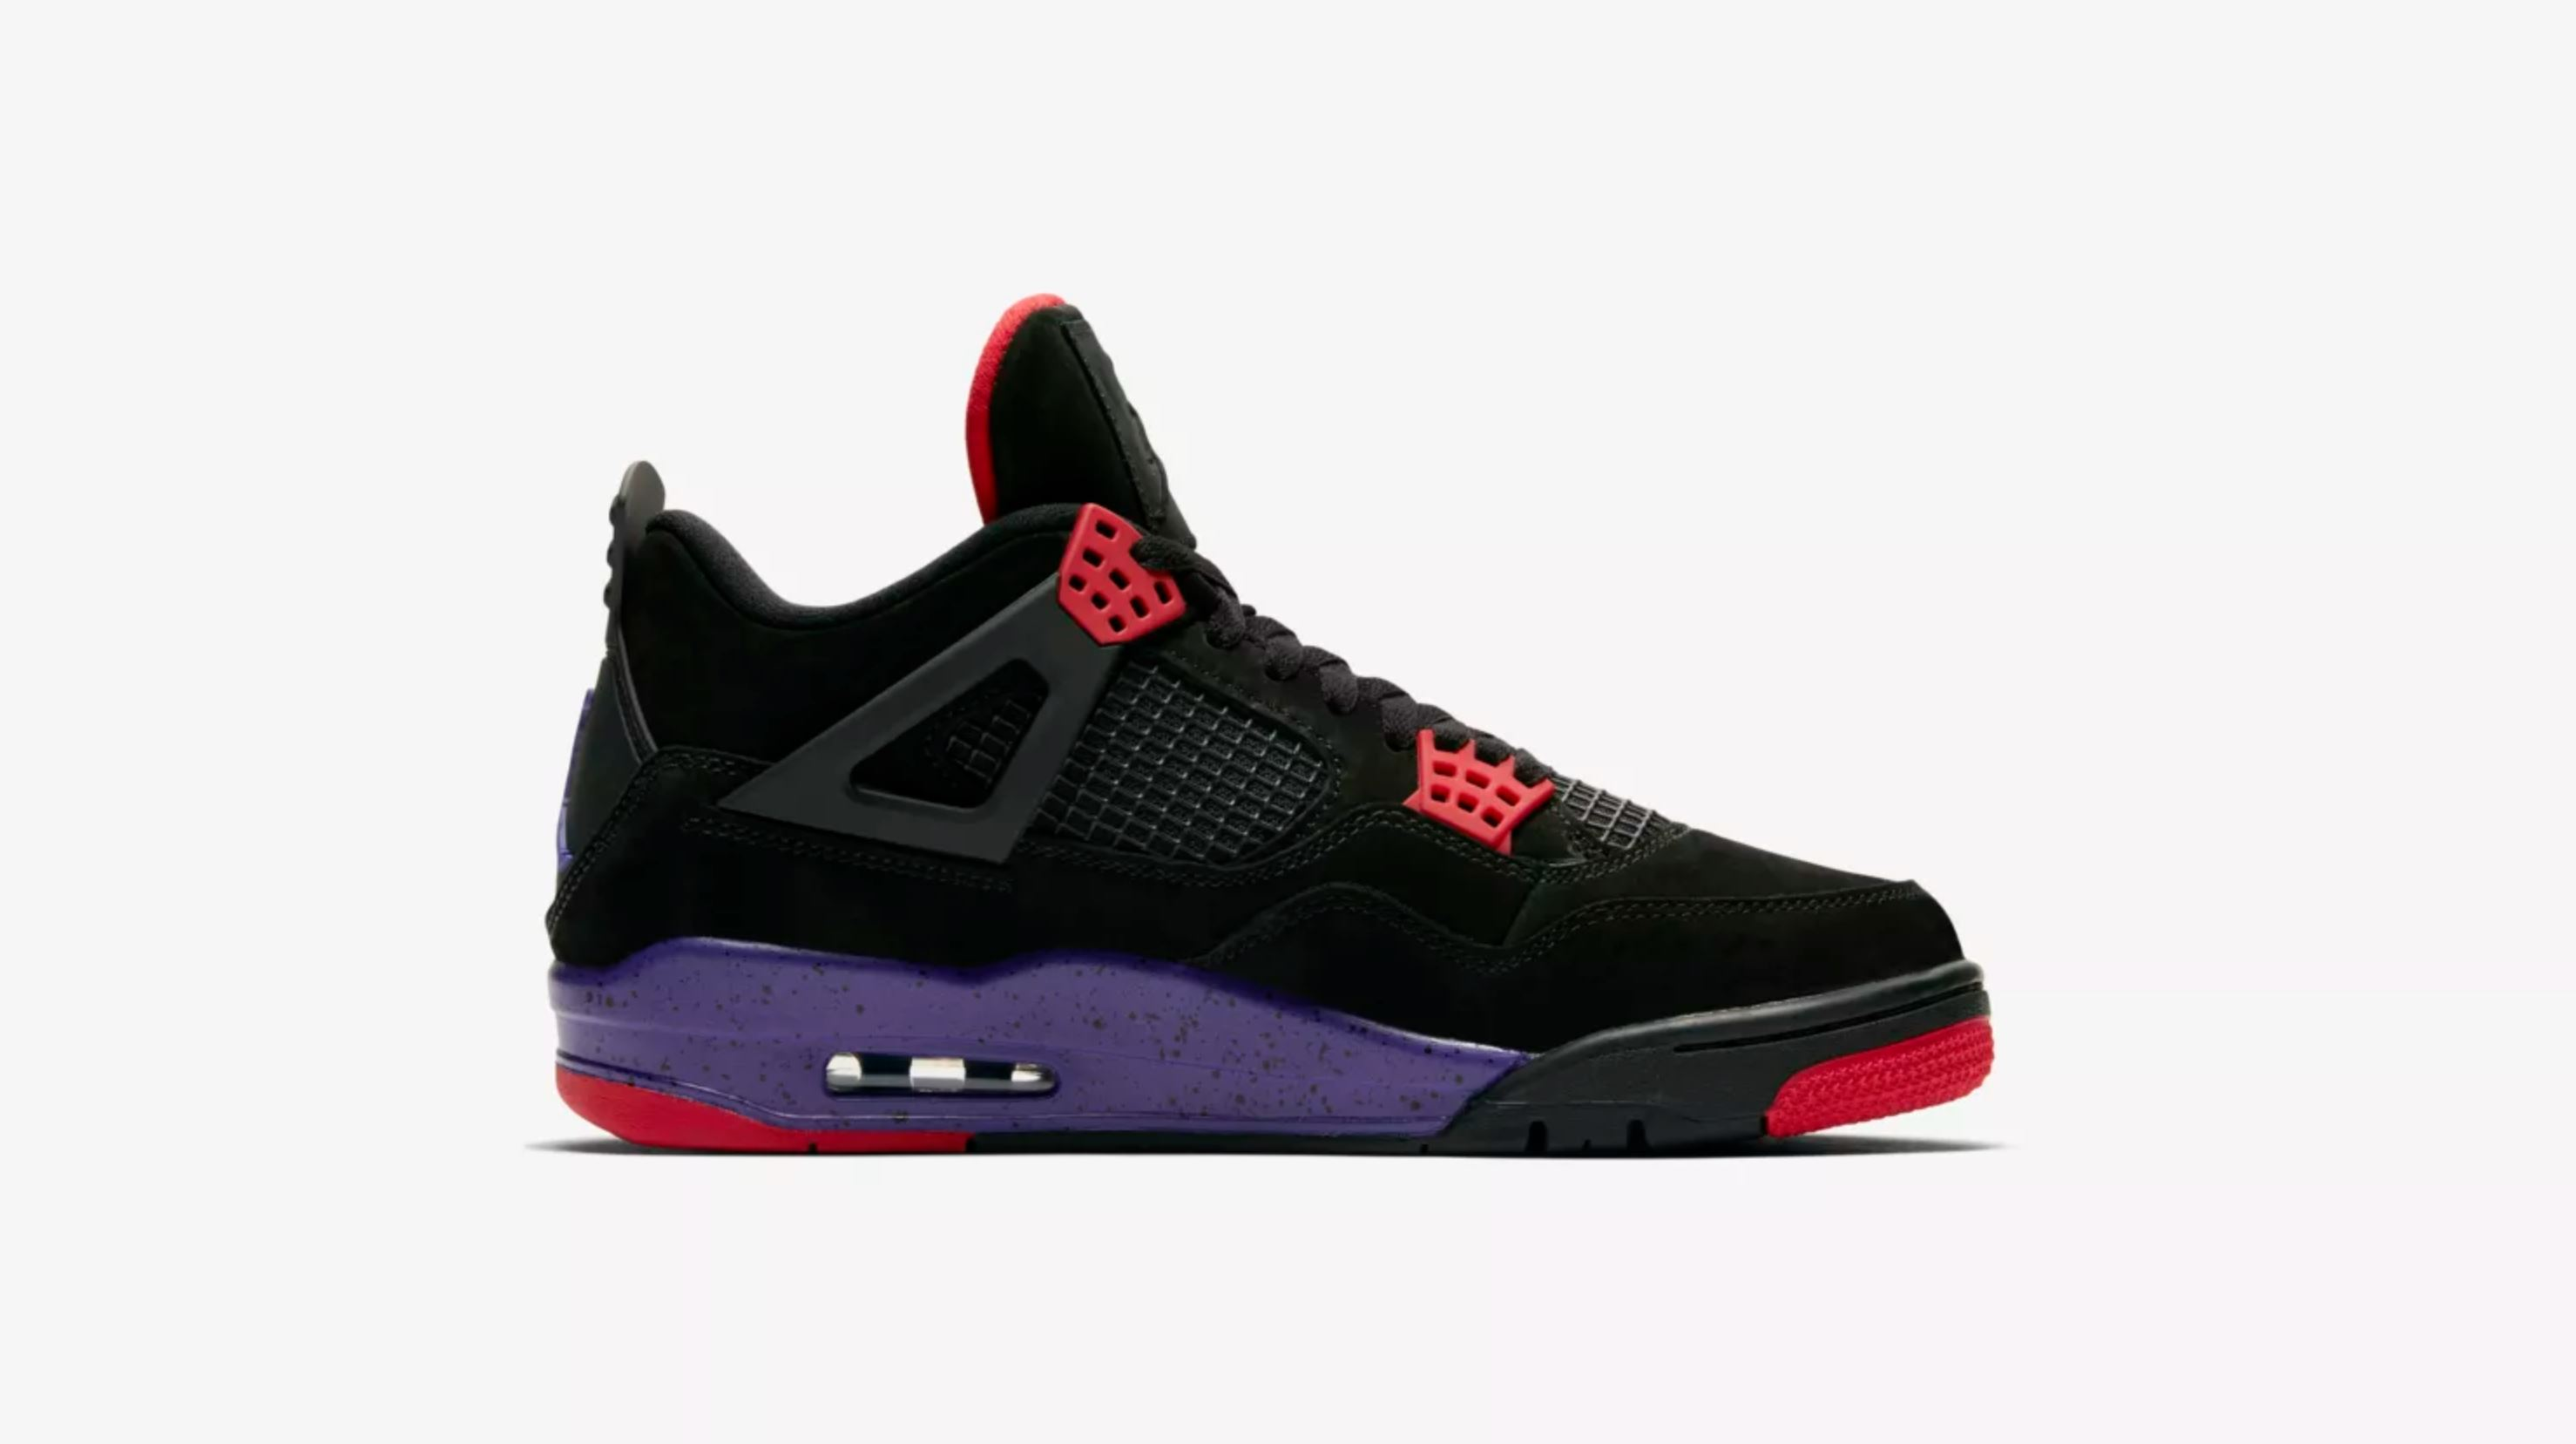 a6b4d64f65aa8a air jordan 4 nrg raptors black court purple - WearTesters